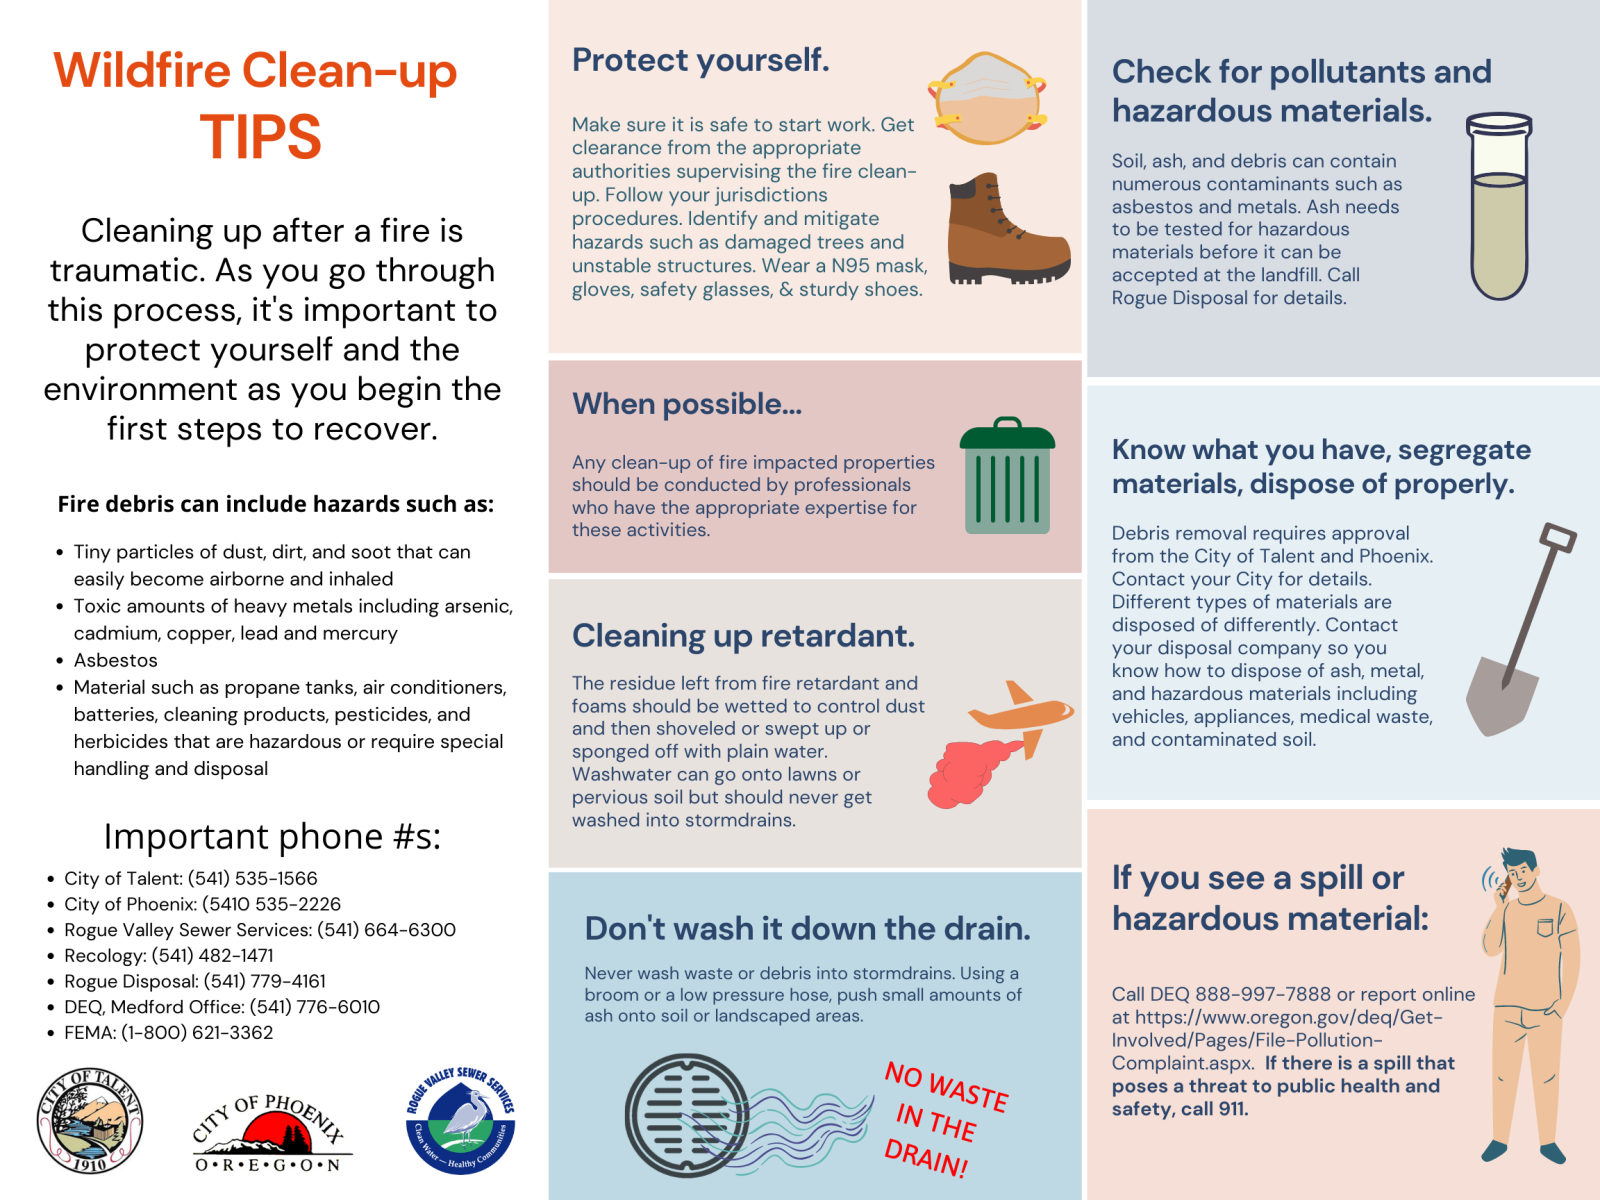 Wildfire Clean-up Tips Sept 25